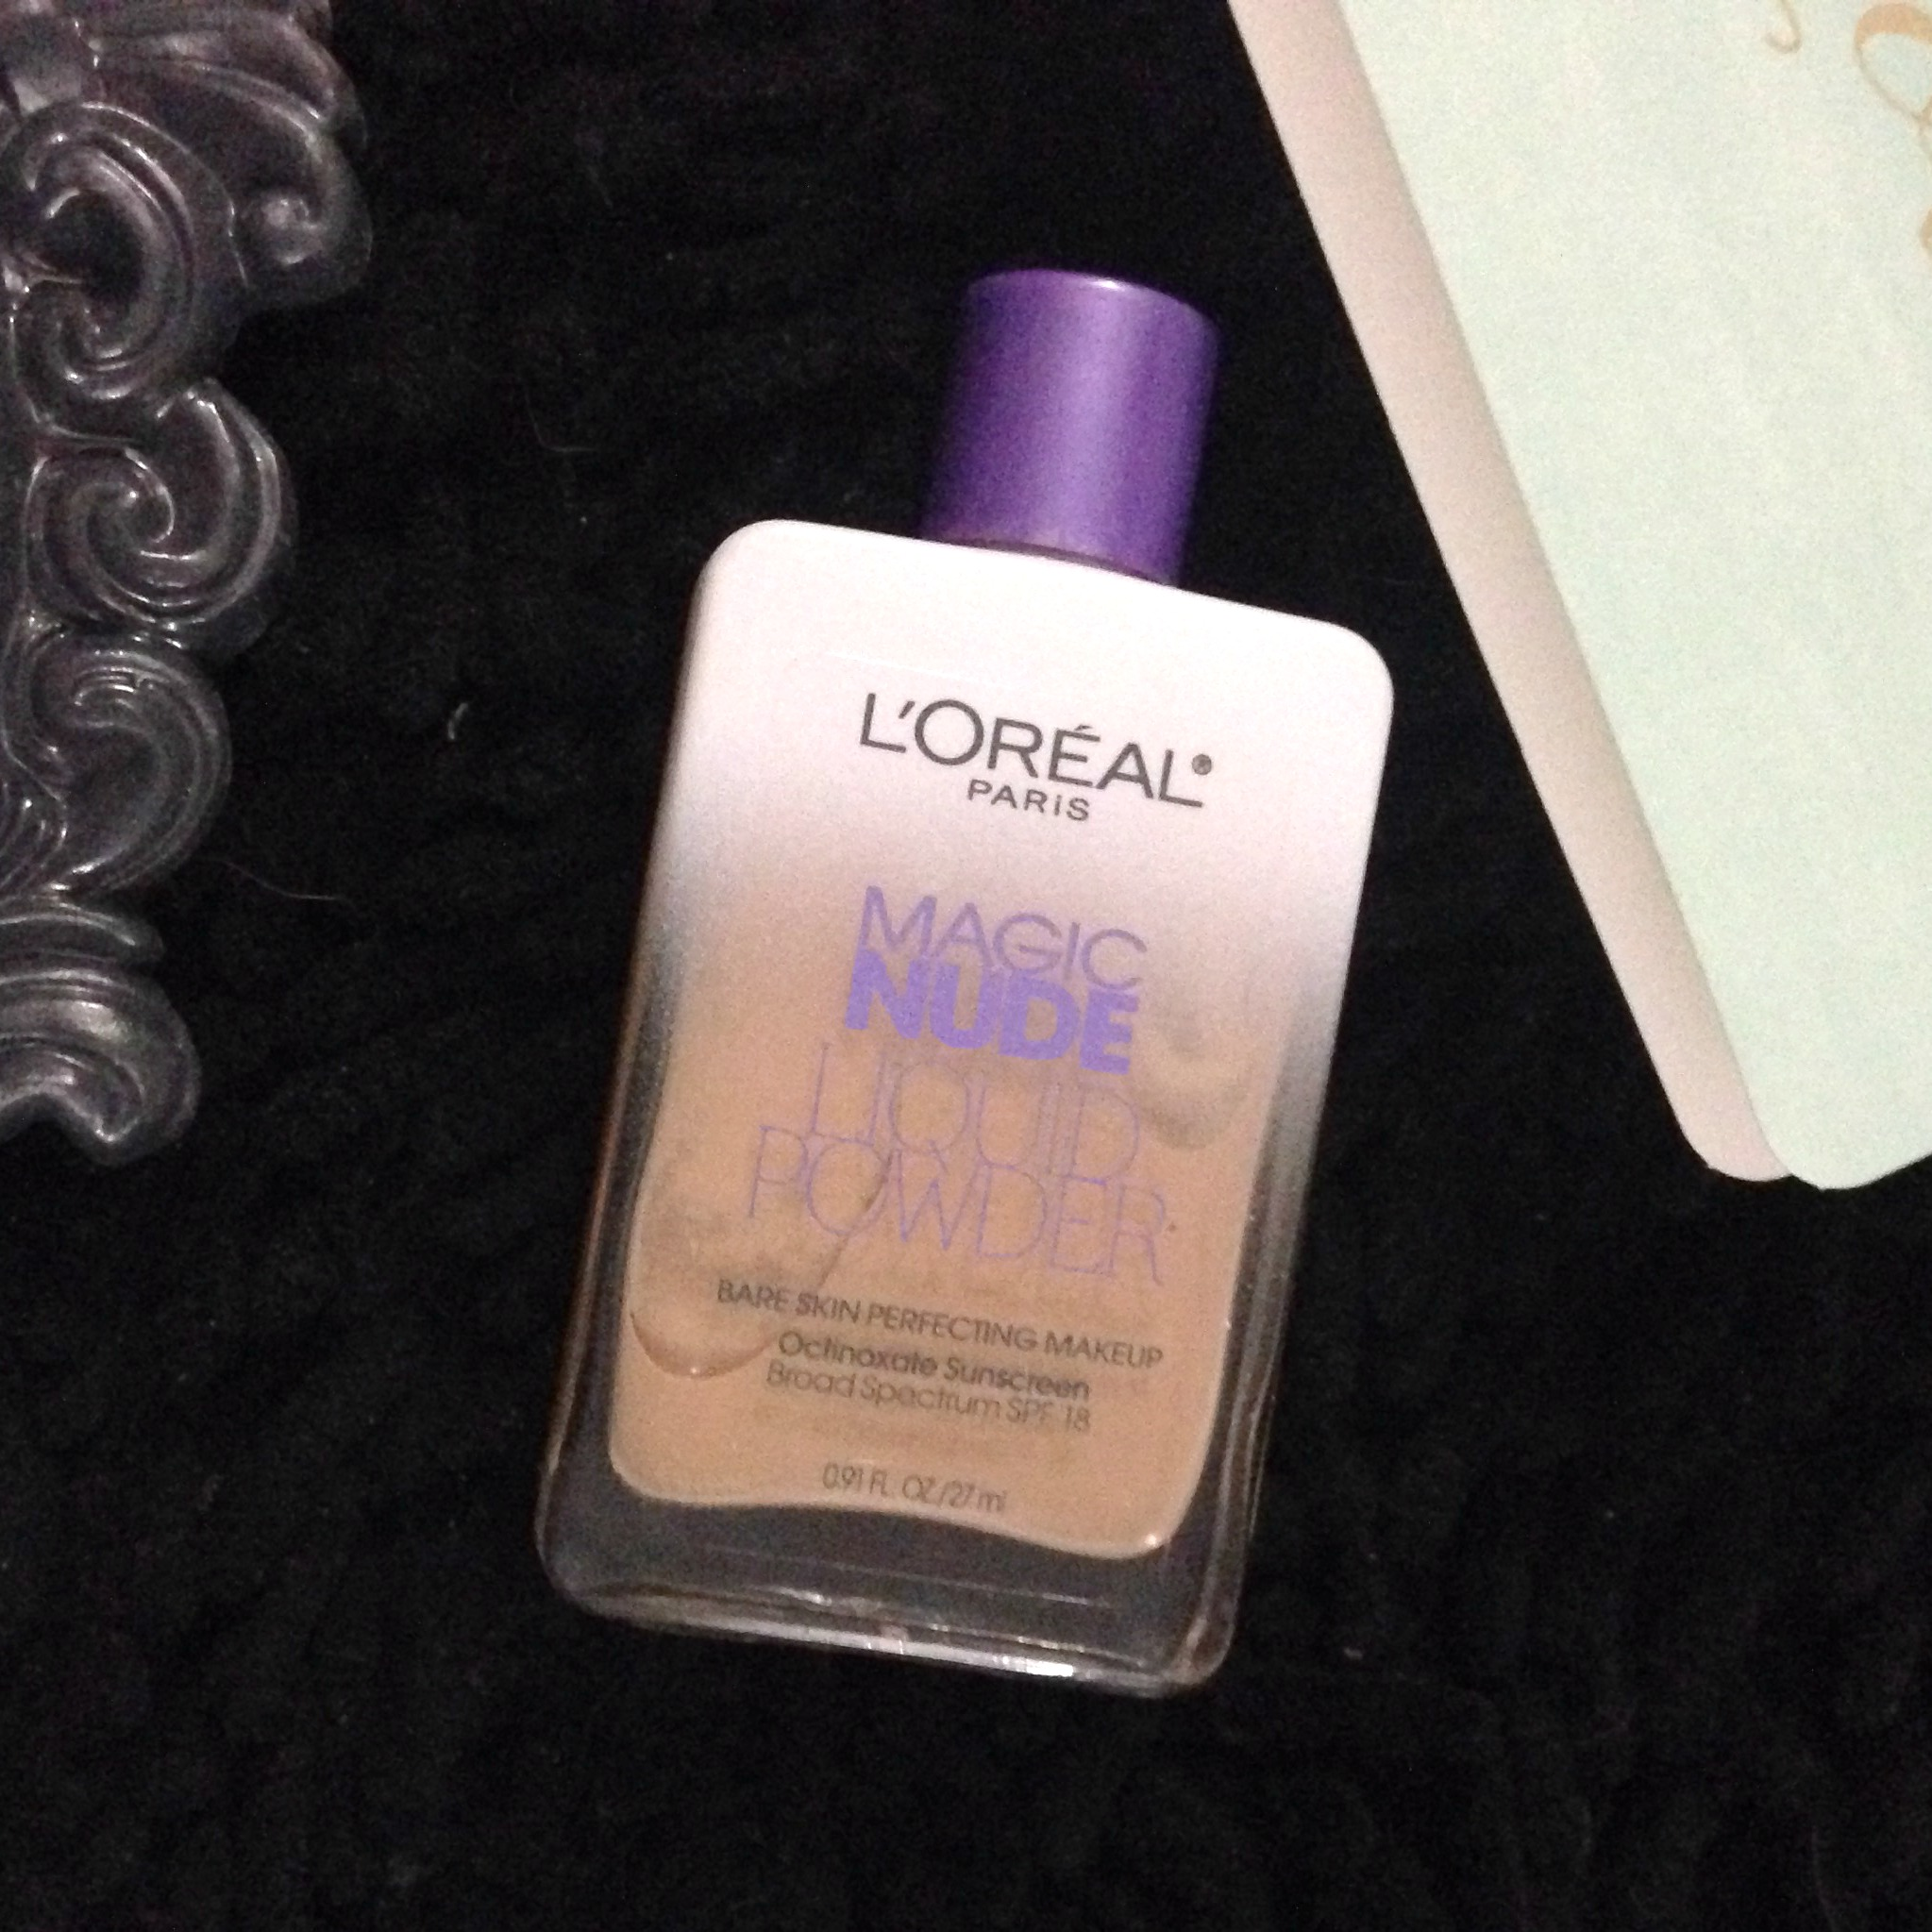 L'Oreal Magic Nude Makeup